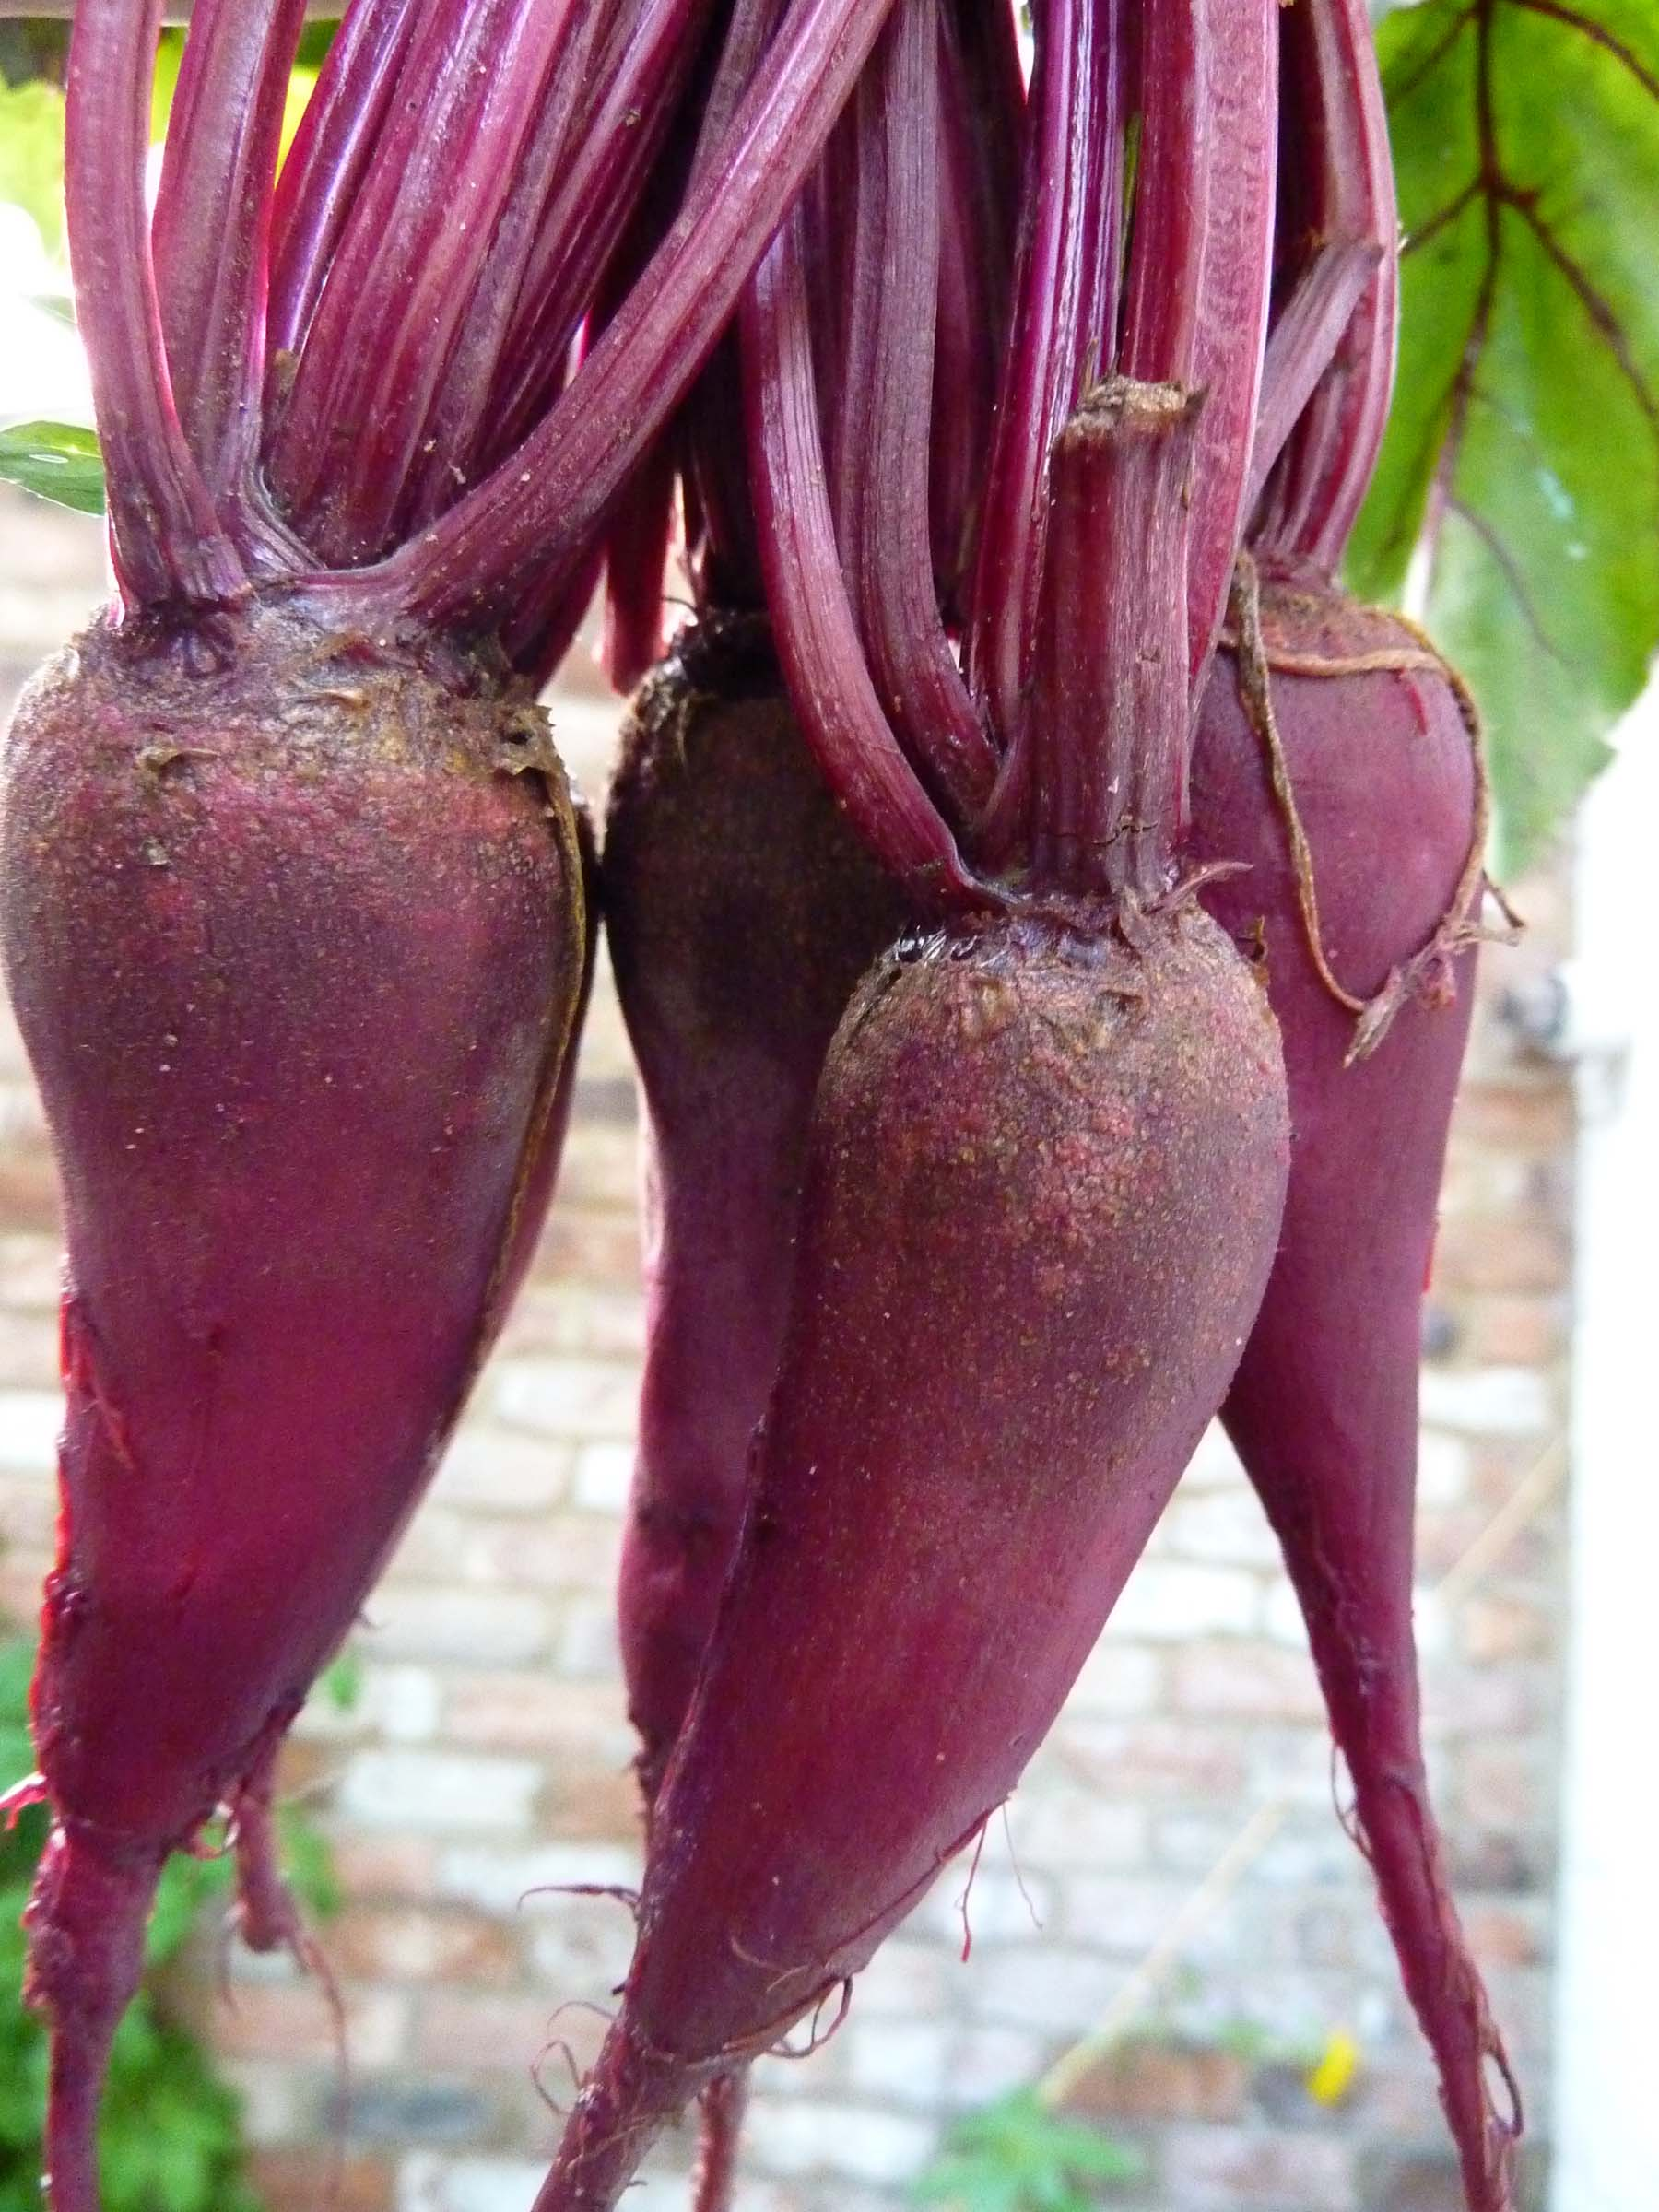 Beetroot-first picking close up